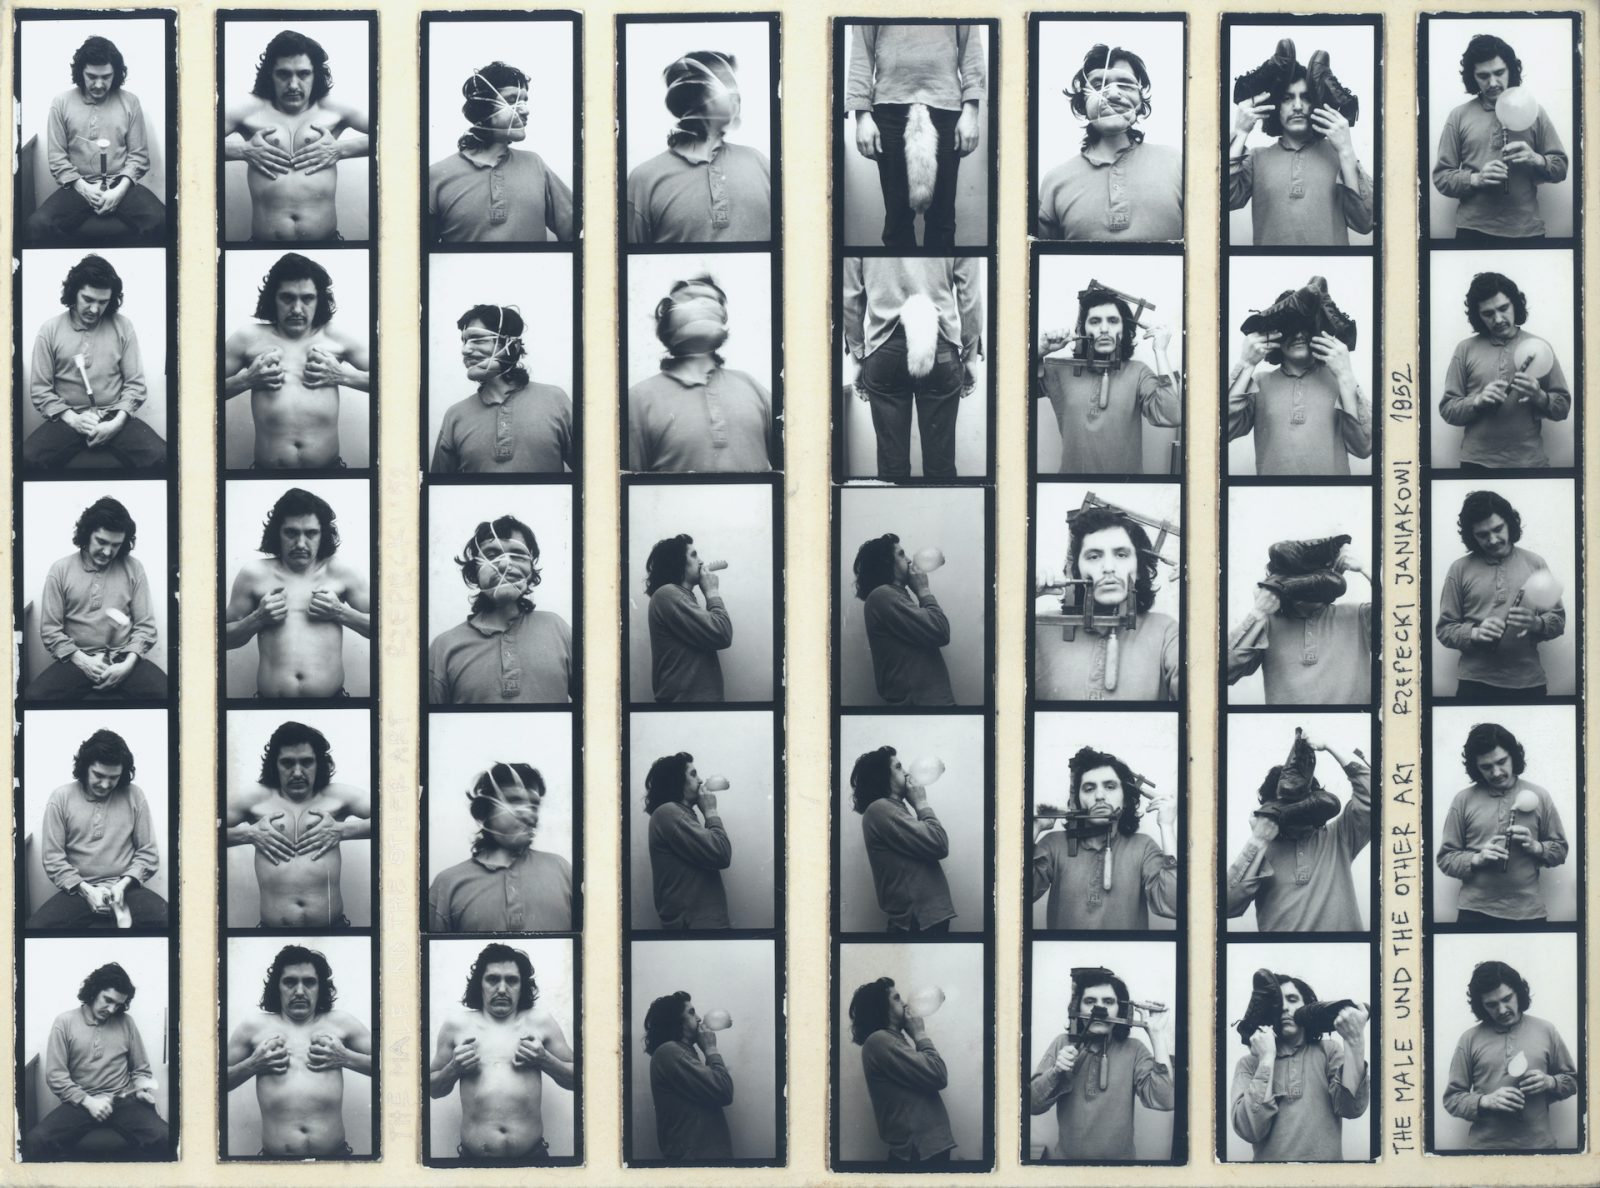 Adam Rzepecki The Male and Other Art 1980 photography on cardboard